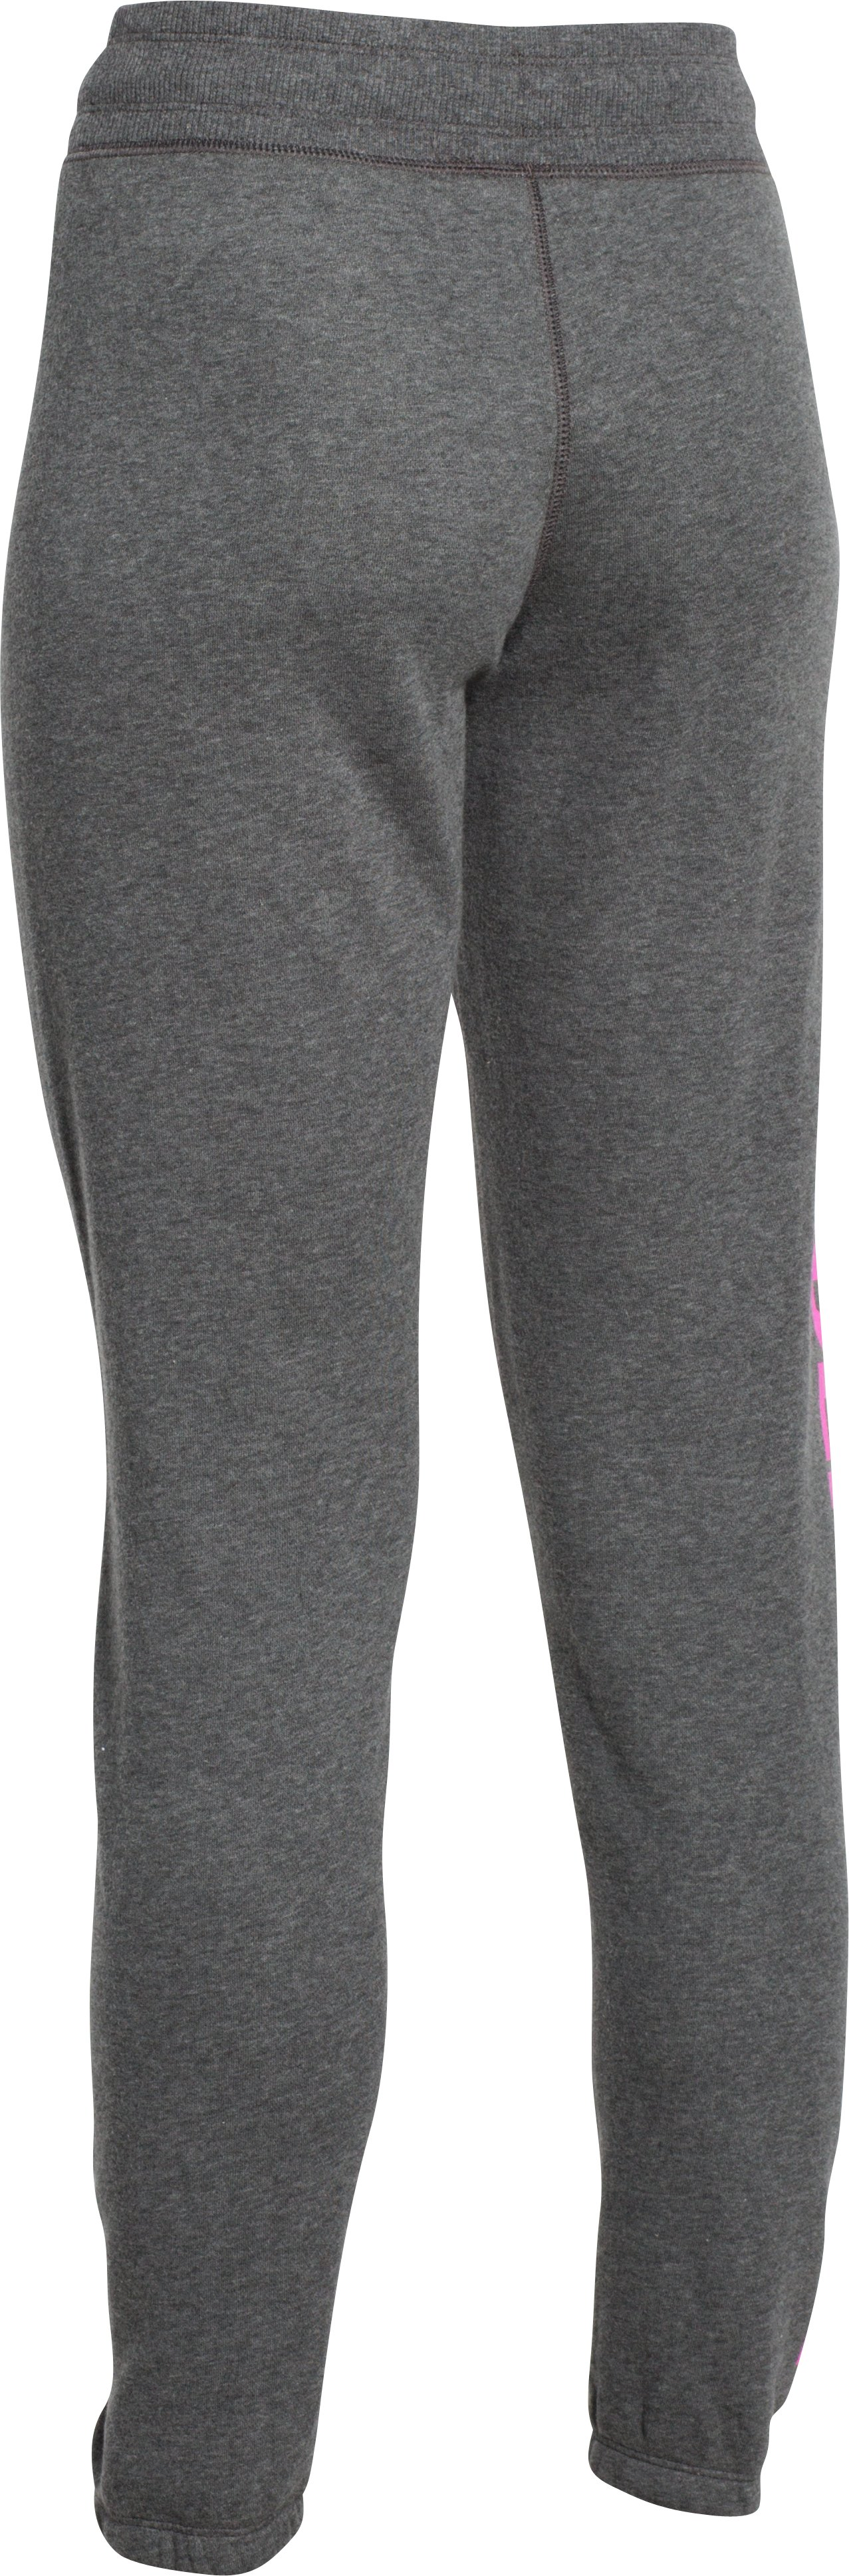 Women's UA Favorite Fleece Word Mark Boyfriend Pants, Carbon Heather